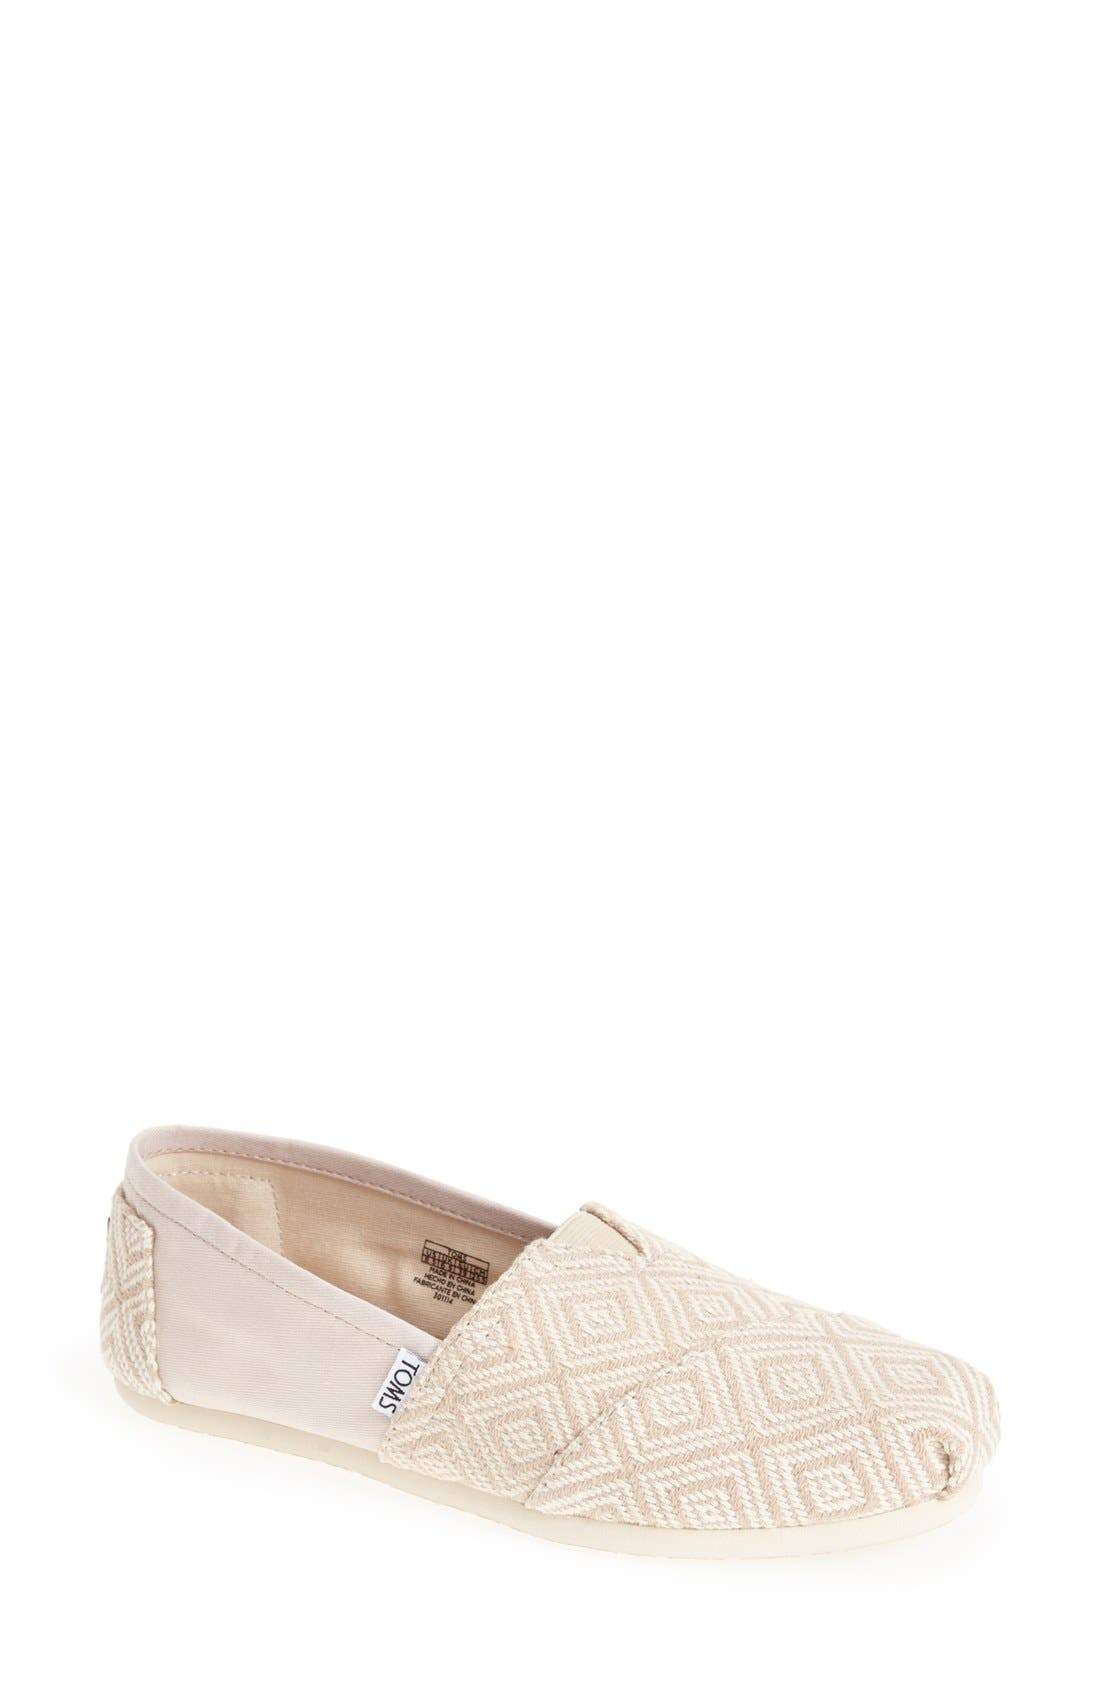 Alternate Image 1 Selected - TOMS 'Classic - Whisper Diamond' Woven Slip-On (Women)